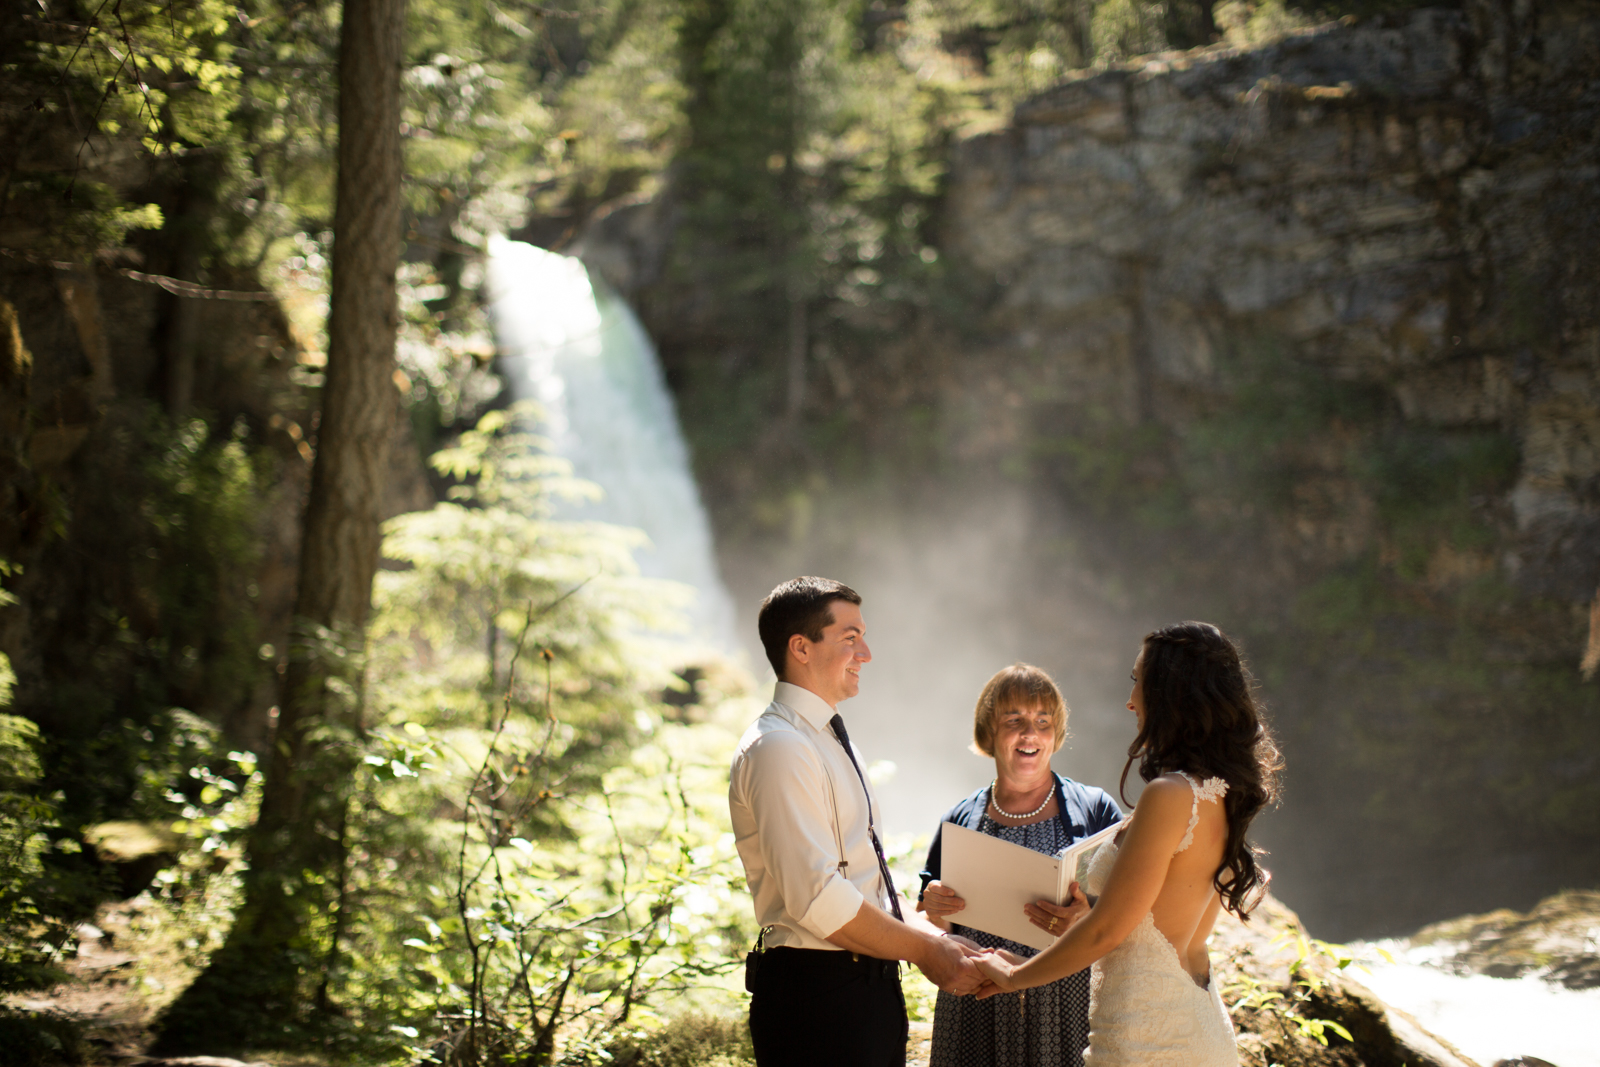 35Andrew_Pavlidis_Photography_Jess_and_Tristan_Revelstoke_Elopement_Calgary_Wedding_Photographer-8157